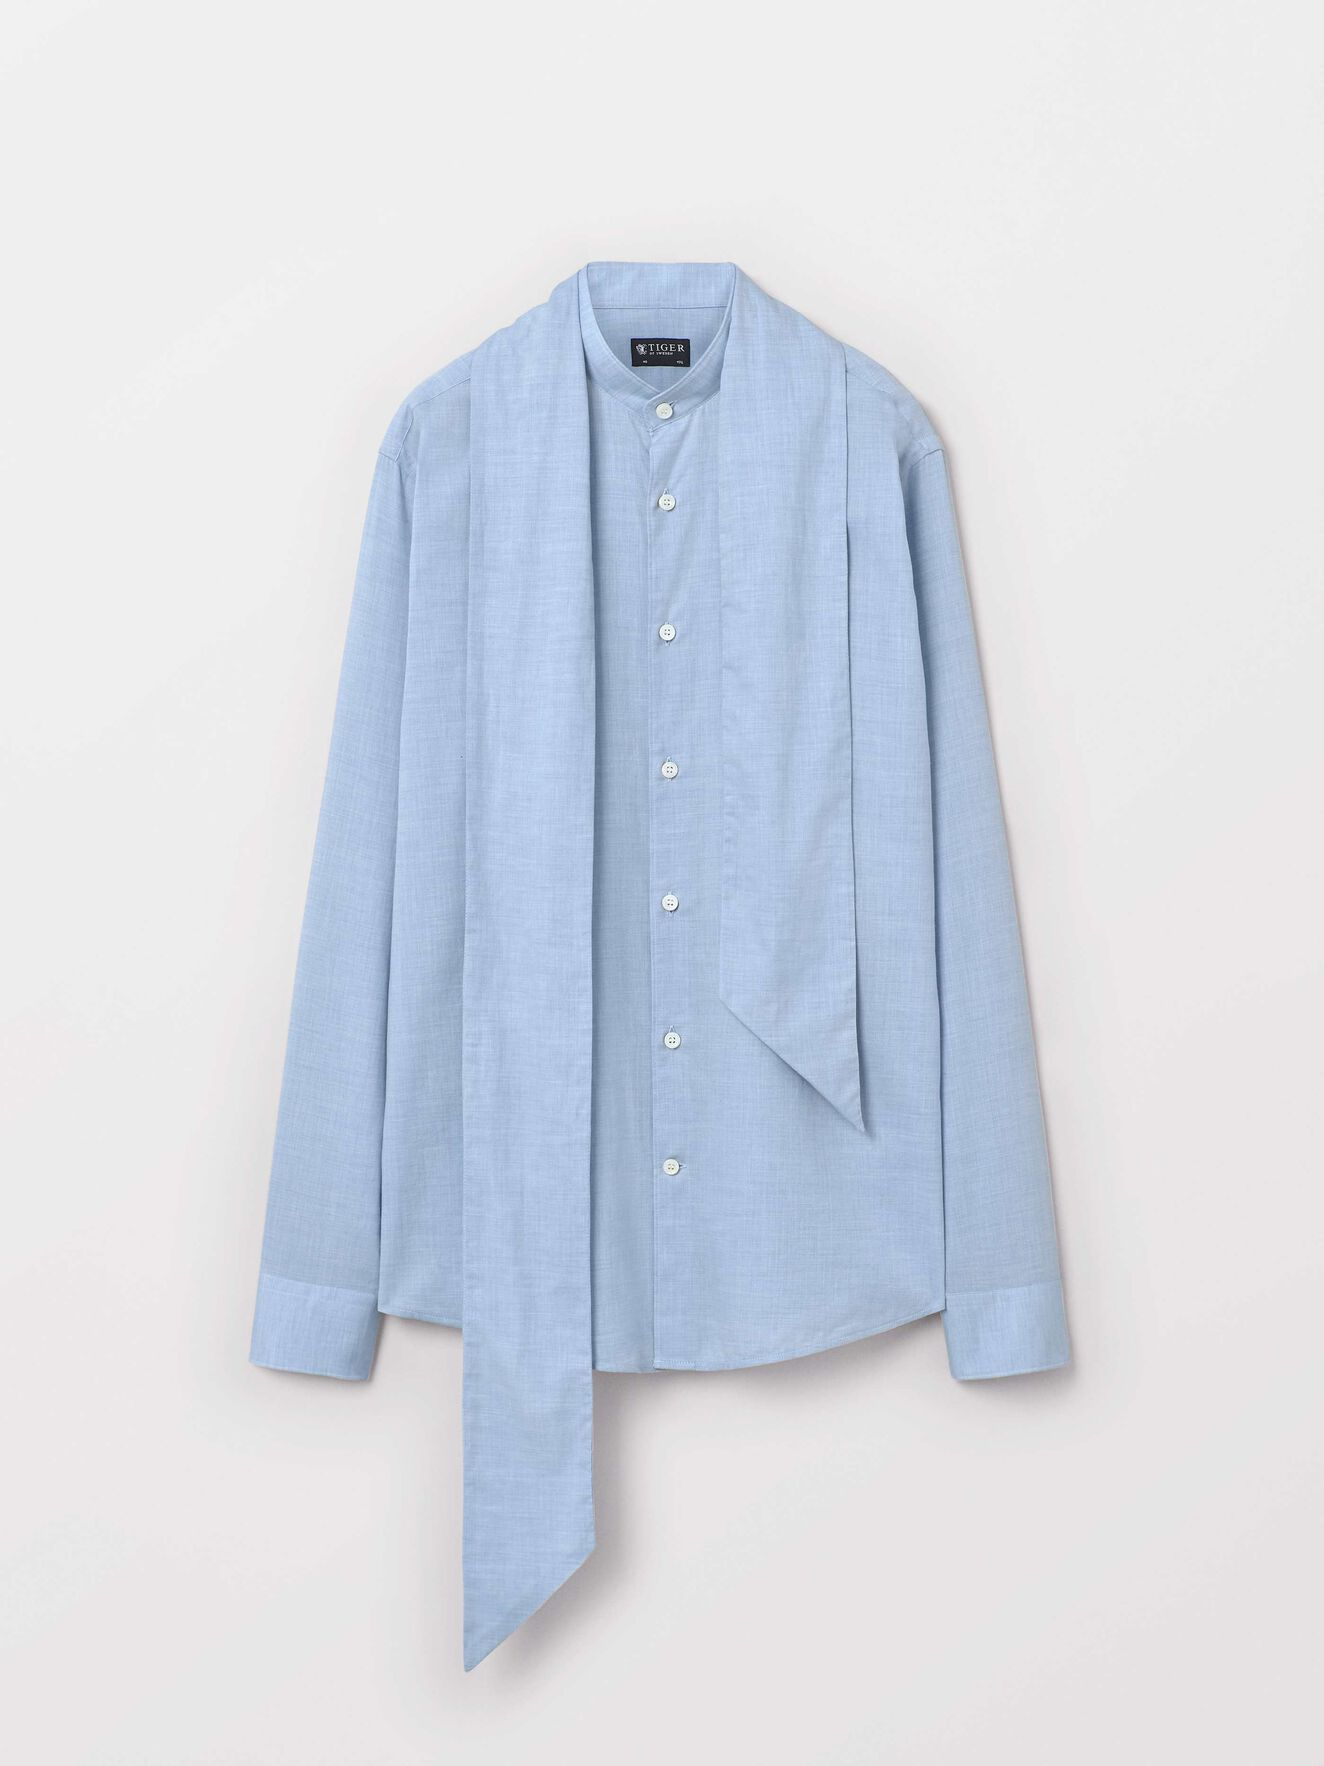 Fabion Shirt in Pastelblue from Tiger of Sweden